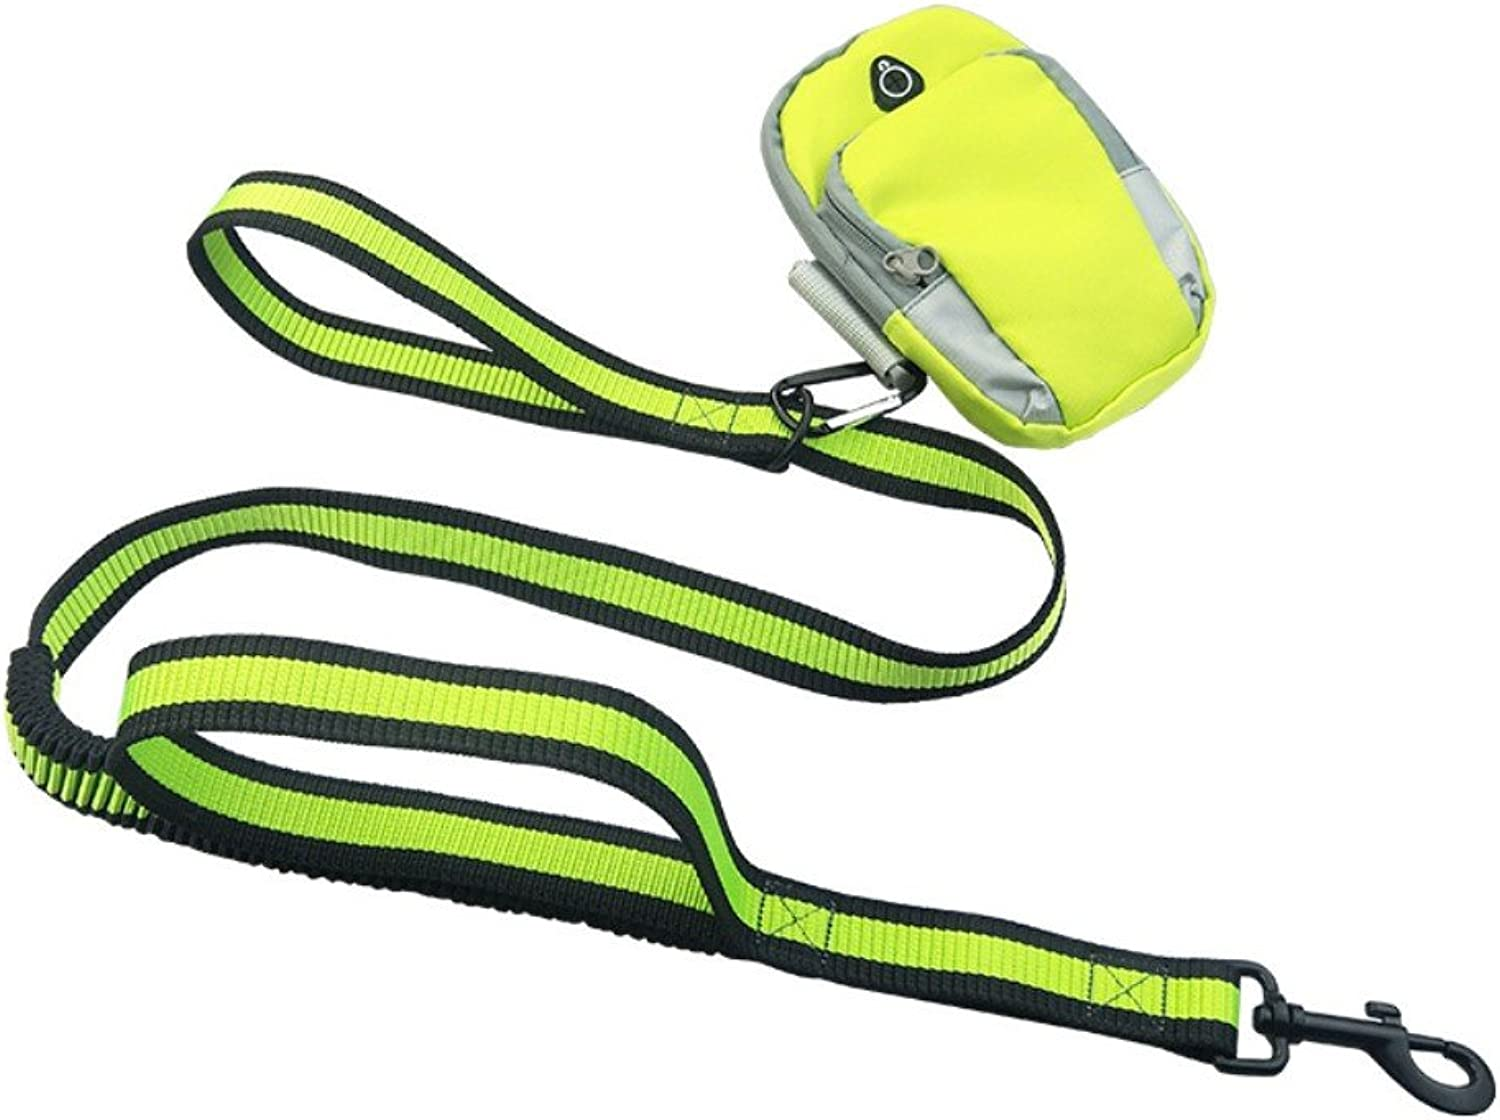 DXABLE Hand Free Dog Leashes, Waterproof Breathable Arm Bags Running Jogging Dog Leash Reflective Elastic Adjustable Rope with Set (Green)